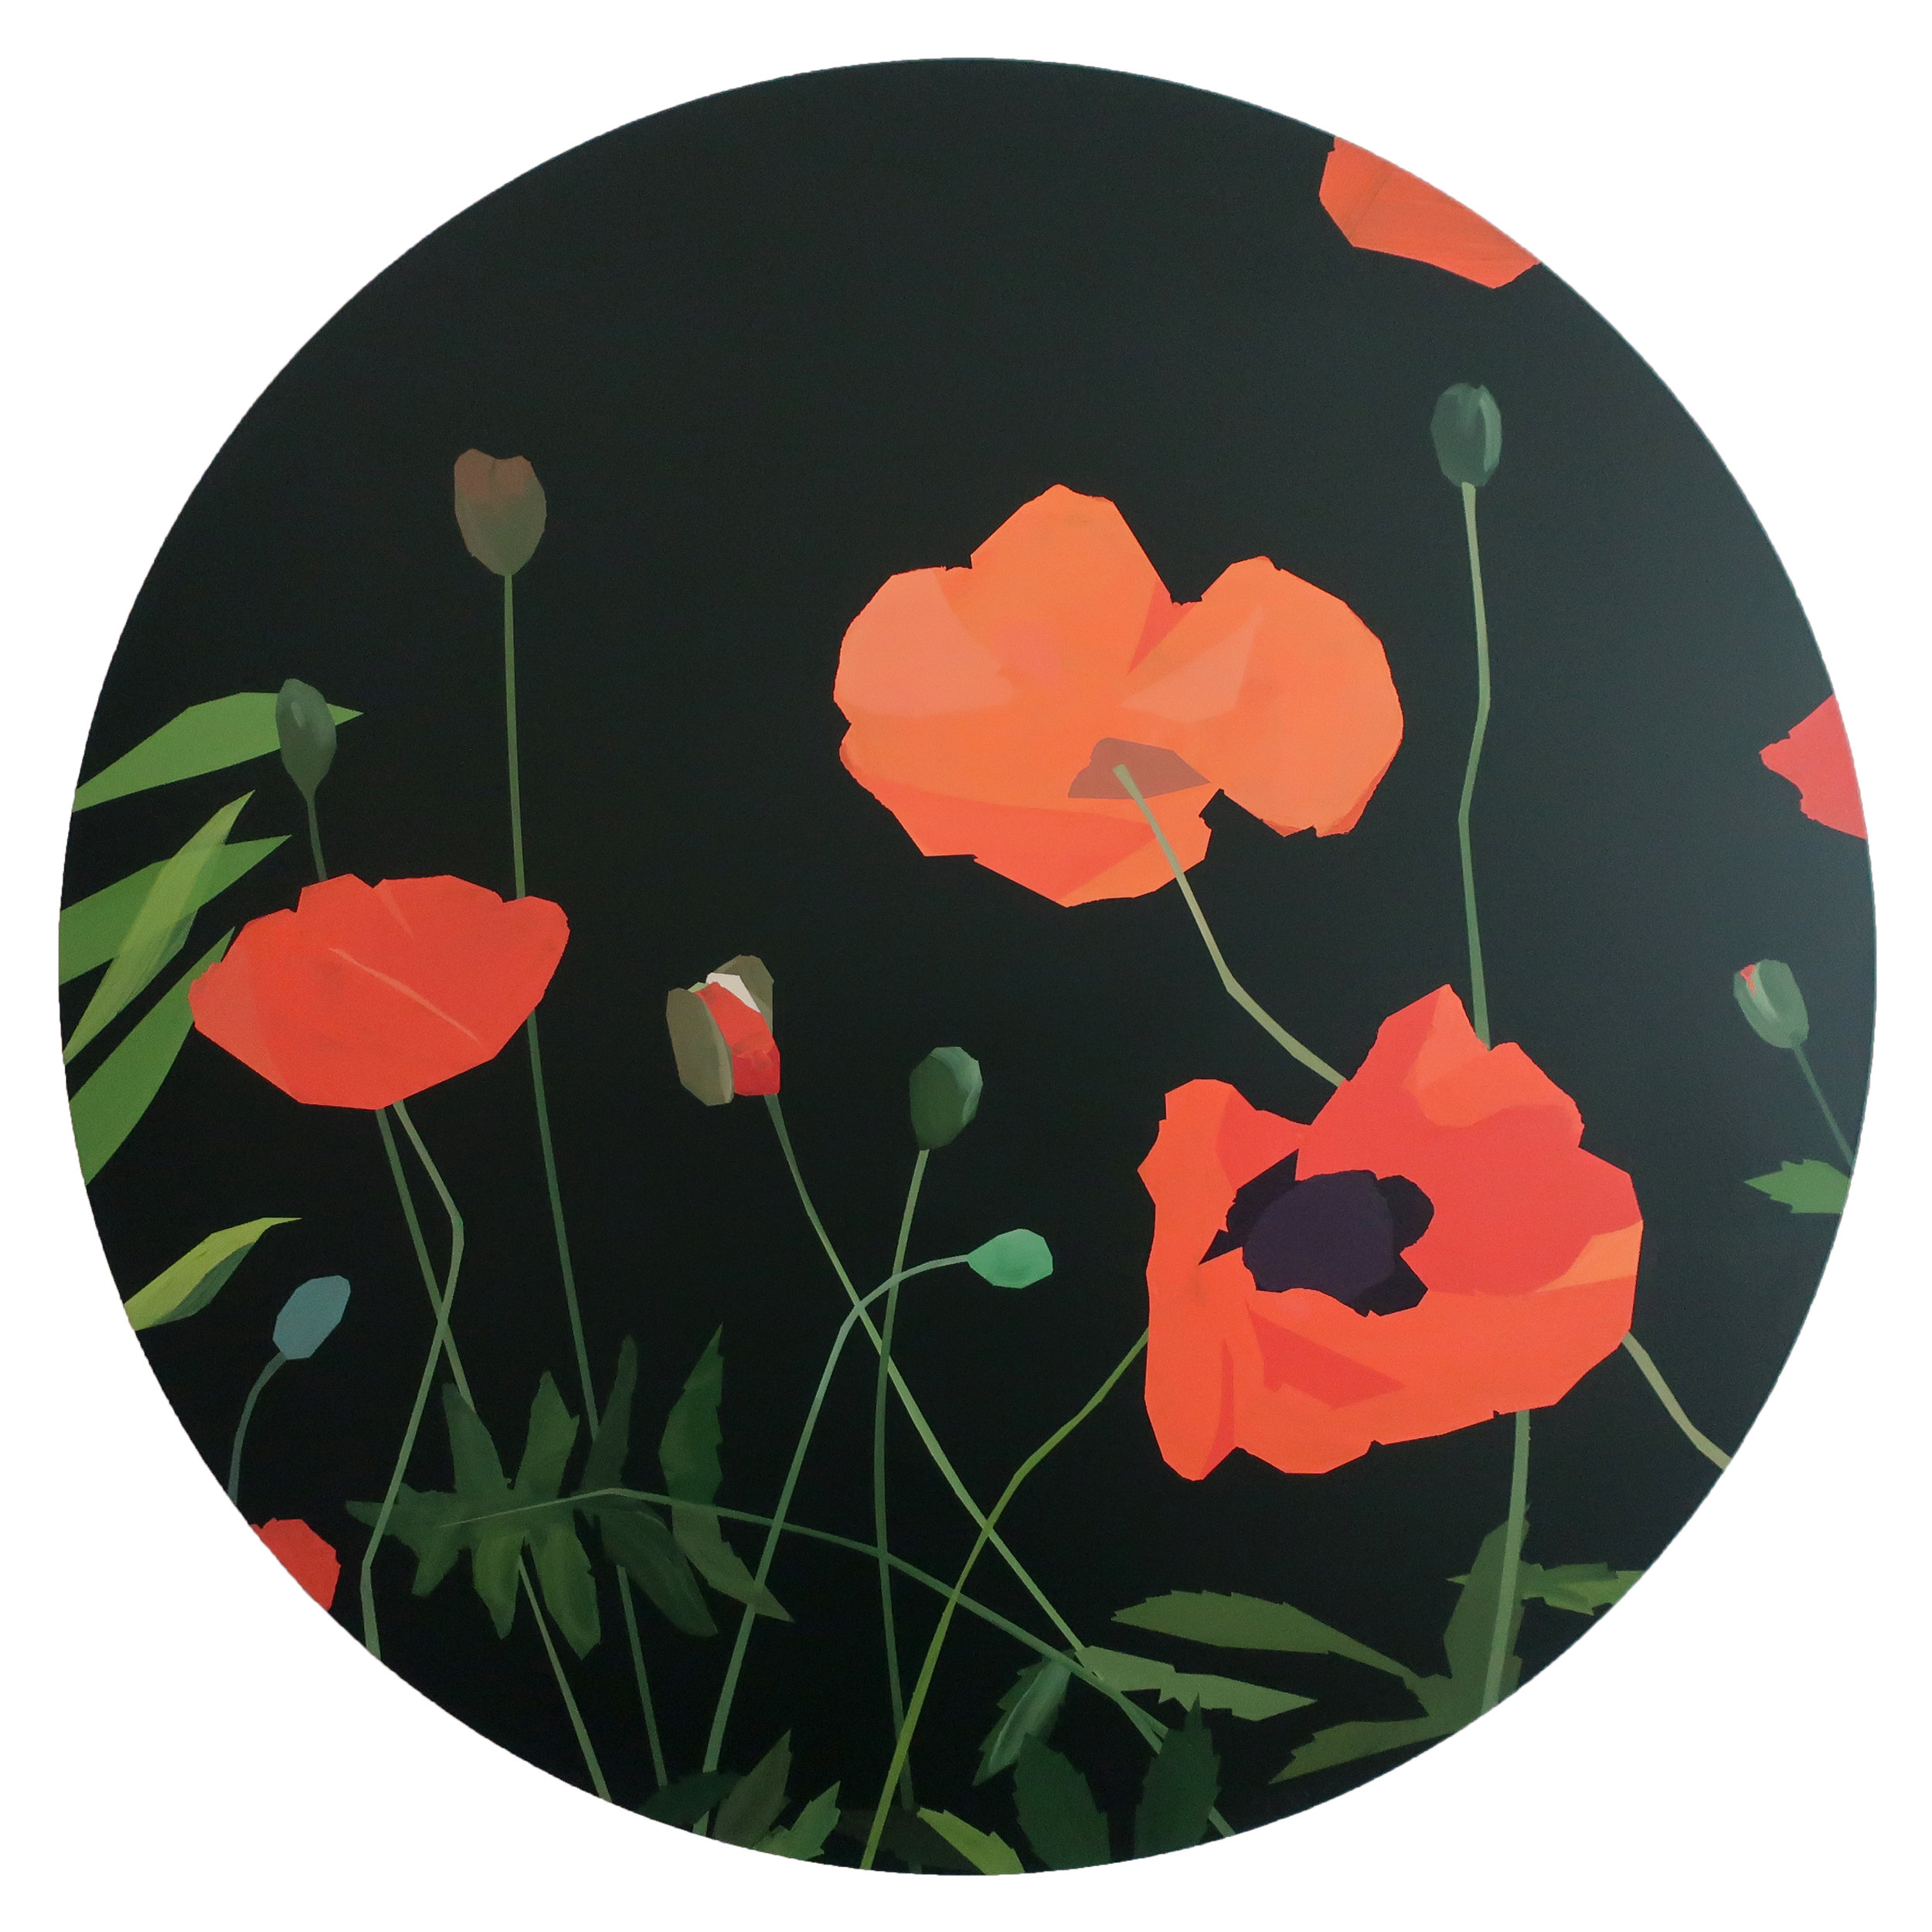 Poppies, Waiting to Unfold